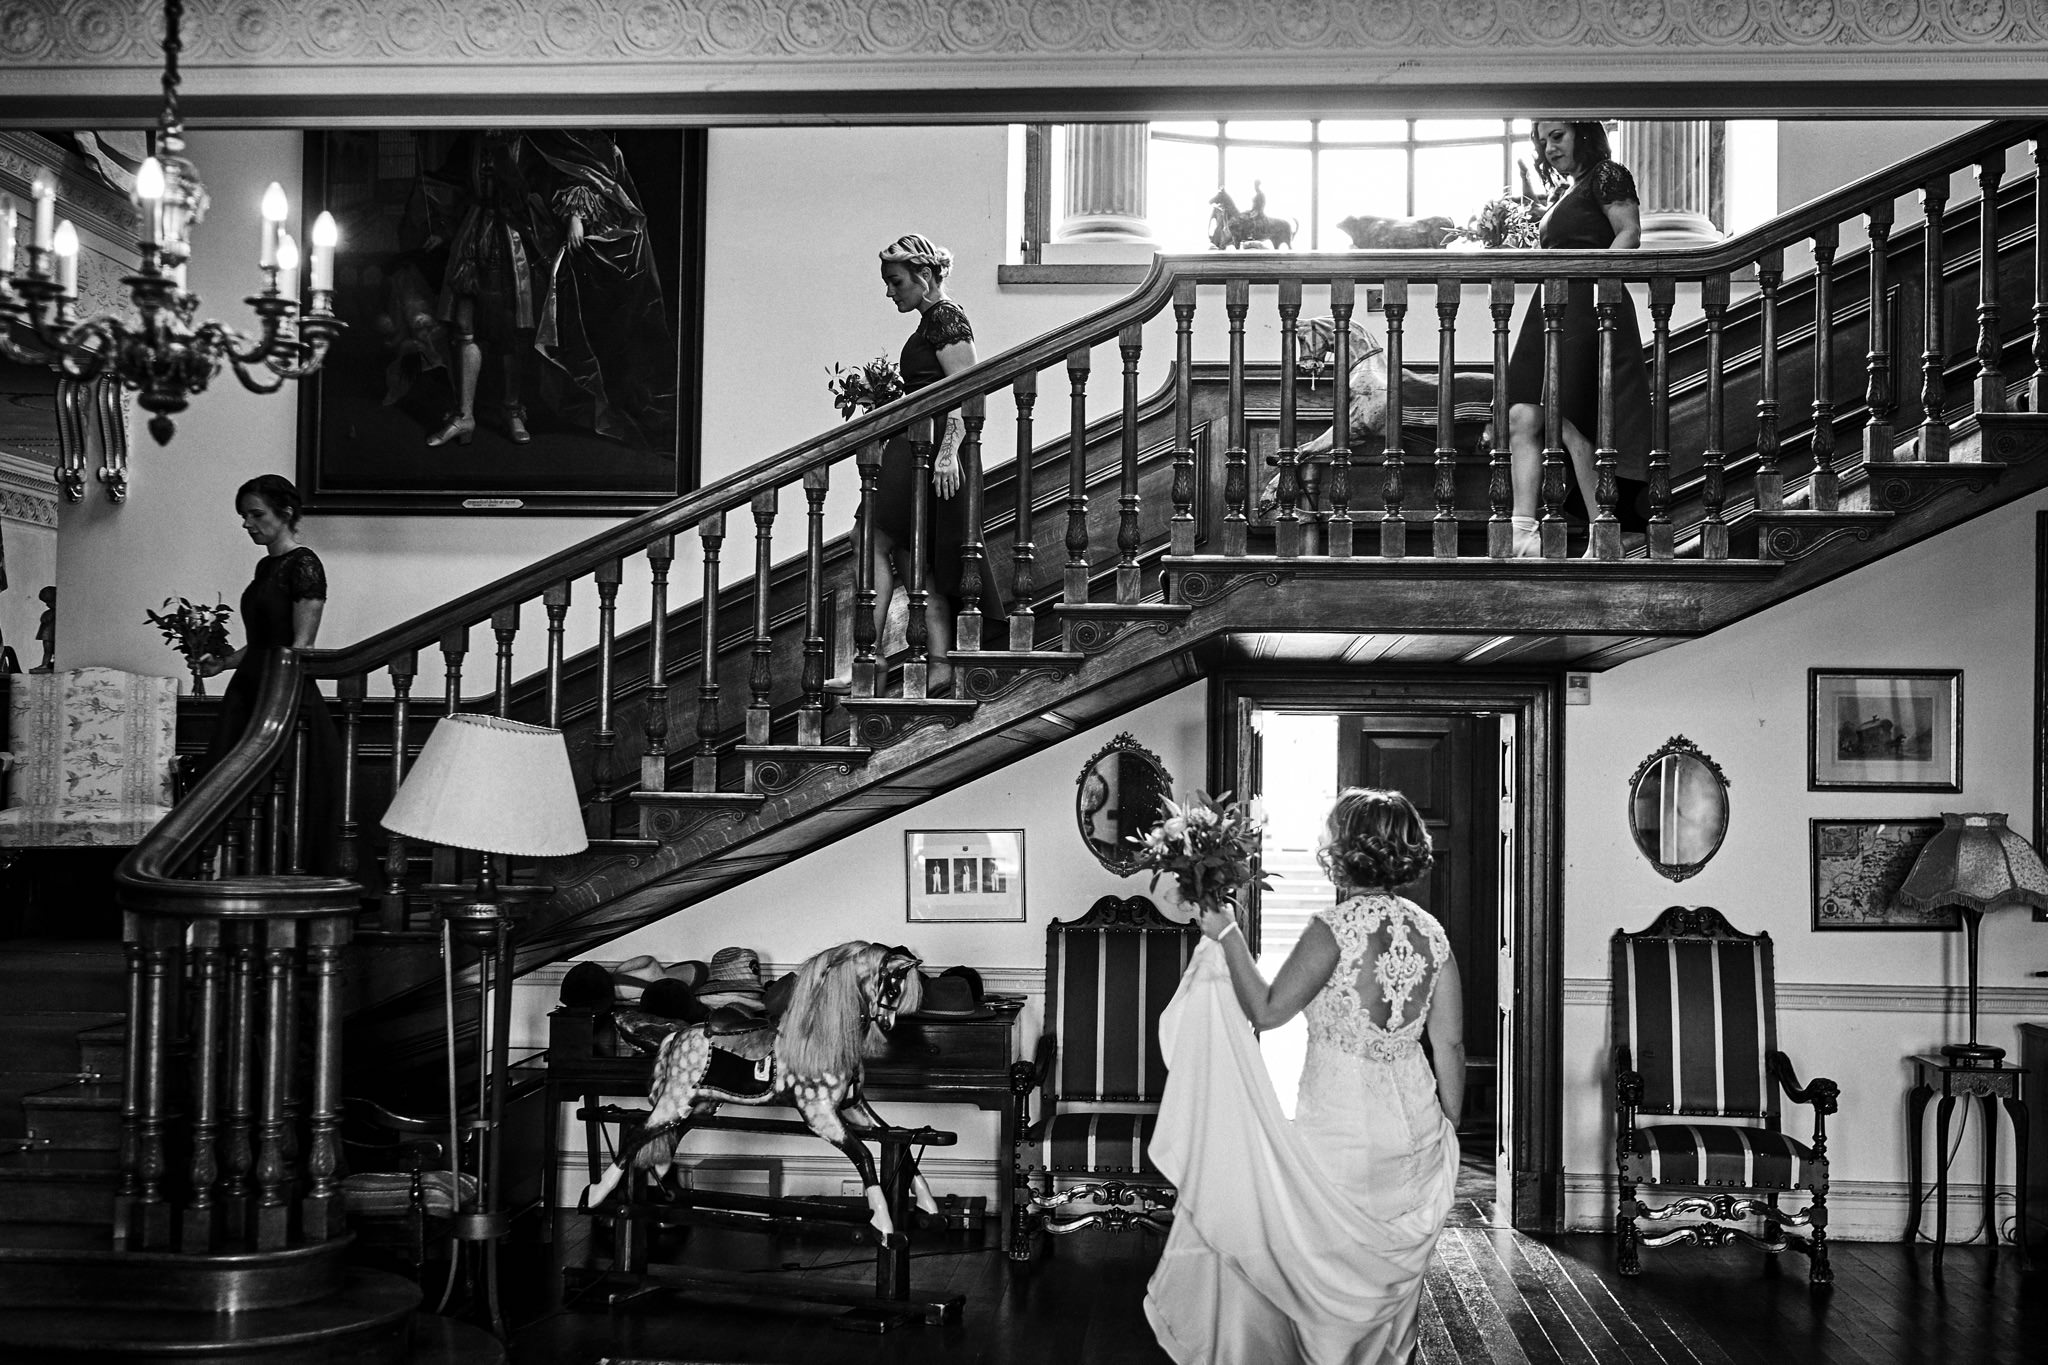 Bridal party on their way to ceremony at Walcot Hall Hotel, Shropshire.